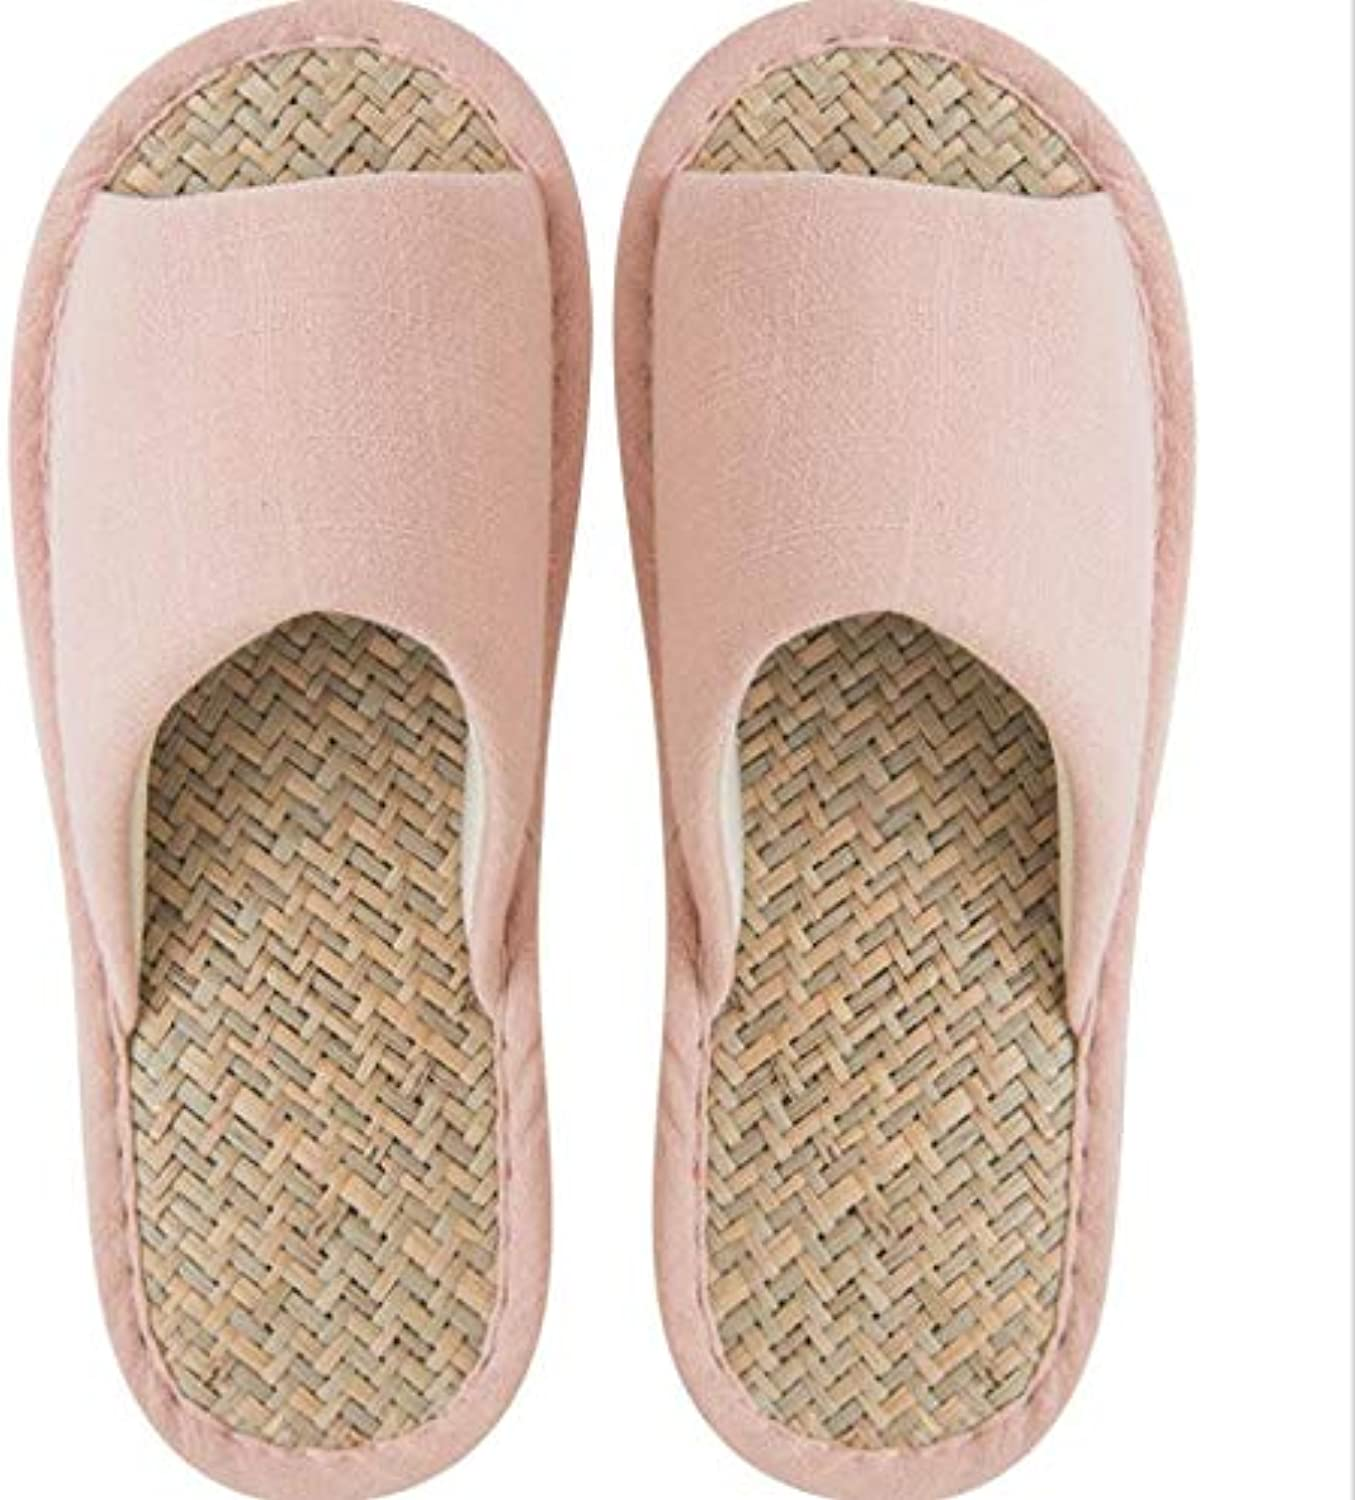 Summer Sandals and Slippers Women's Non-Slip mat red Woven Cool Breathable Home Indoor Couple Slippers Male,Pink,42